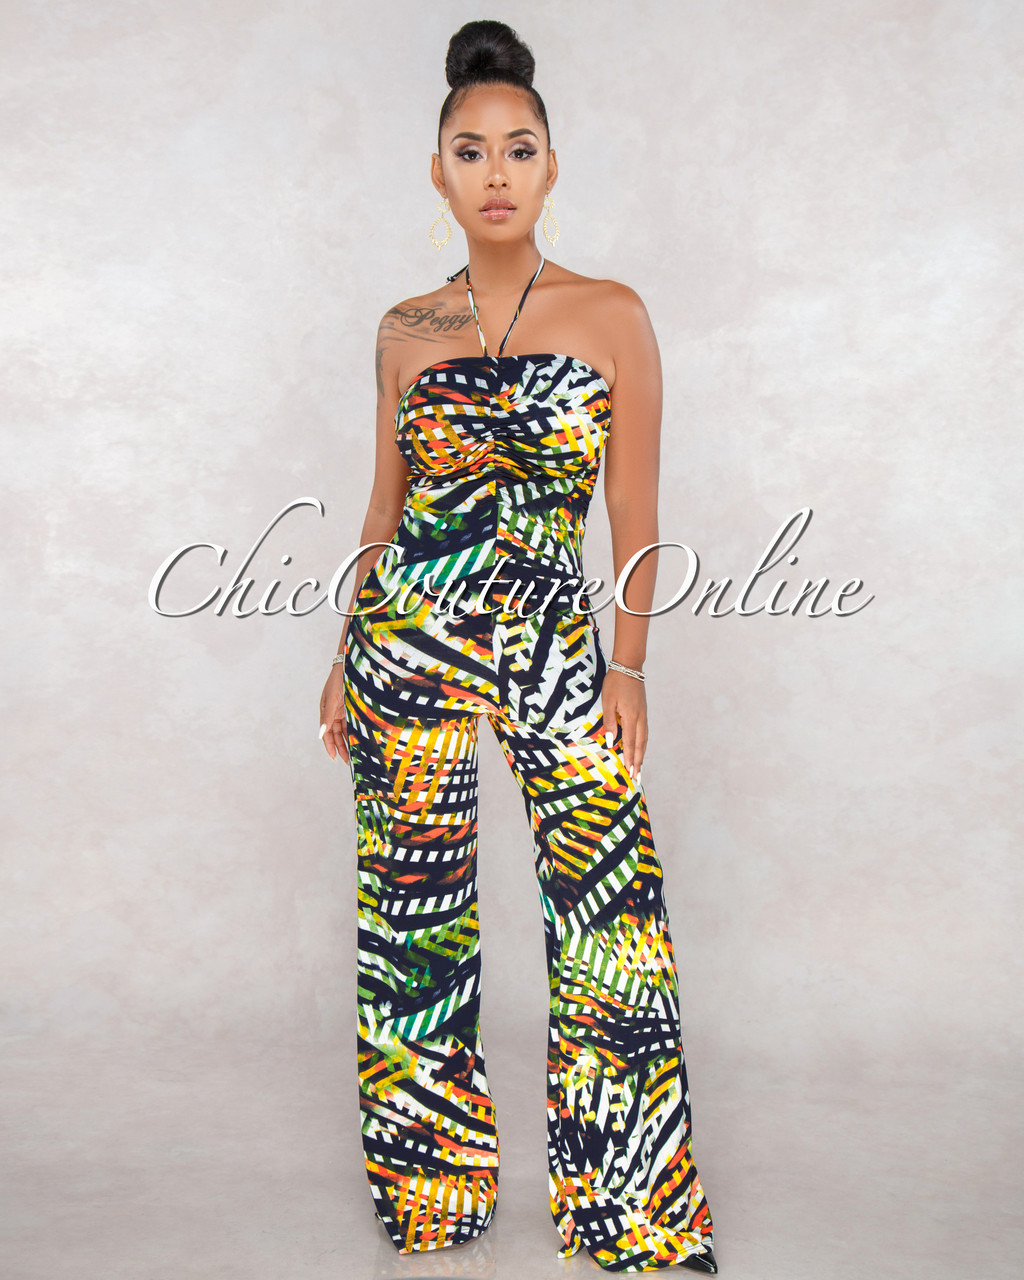 f6a15184dcd7 Margie Navy Blue Multi Color Rushed Strapless Jumpsuit. Price: $50.00.  Image 1